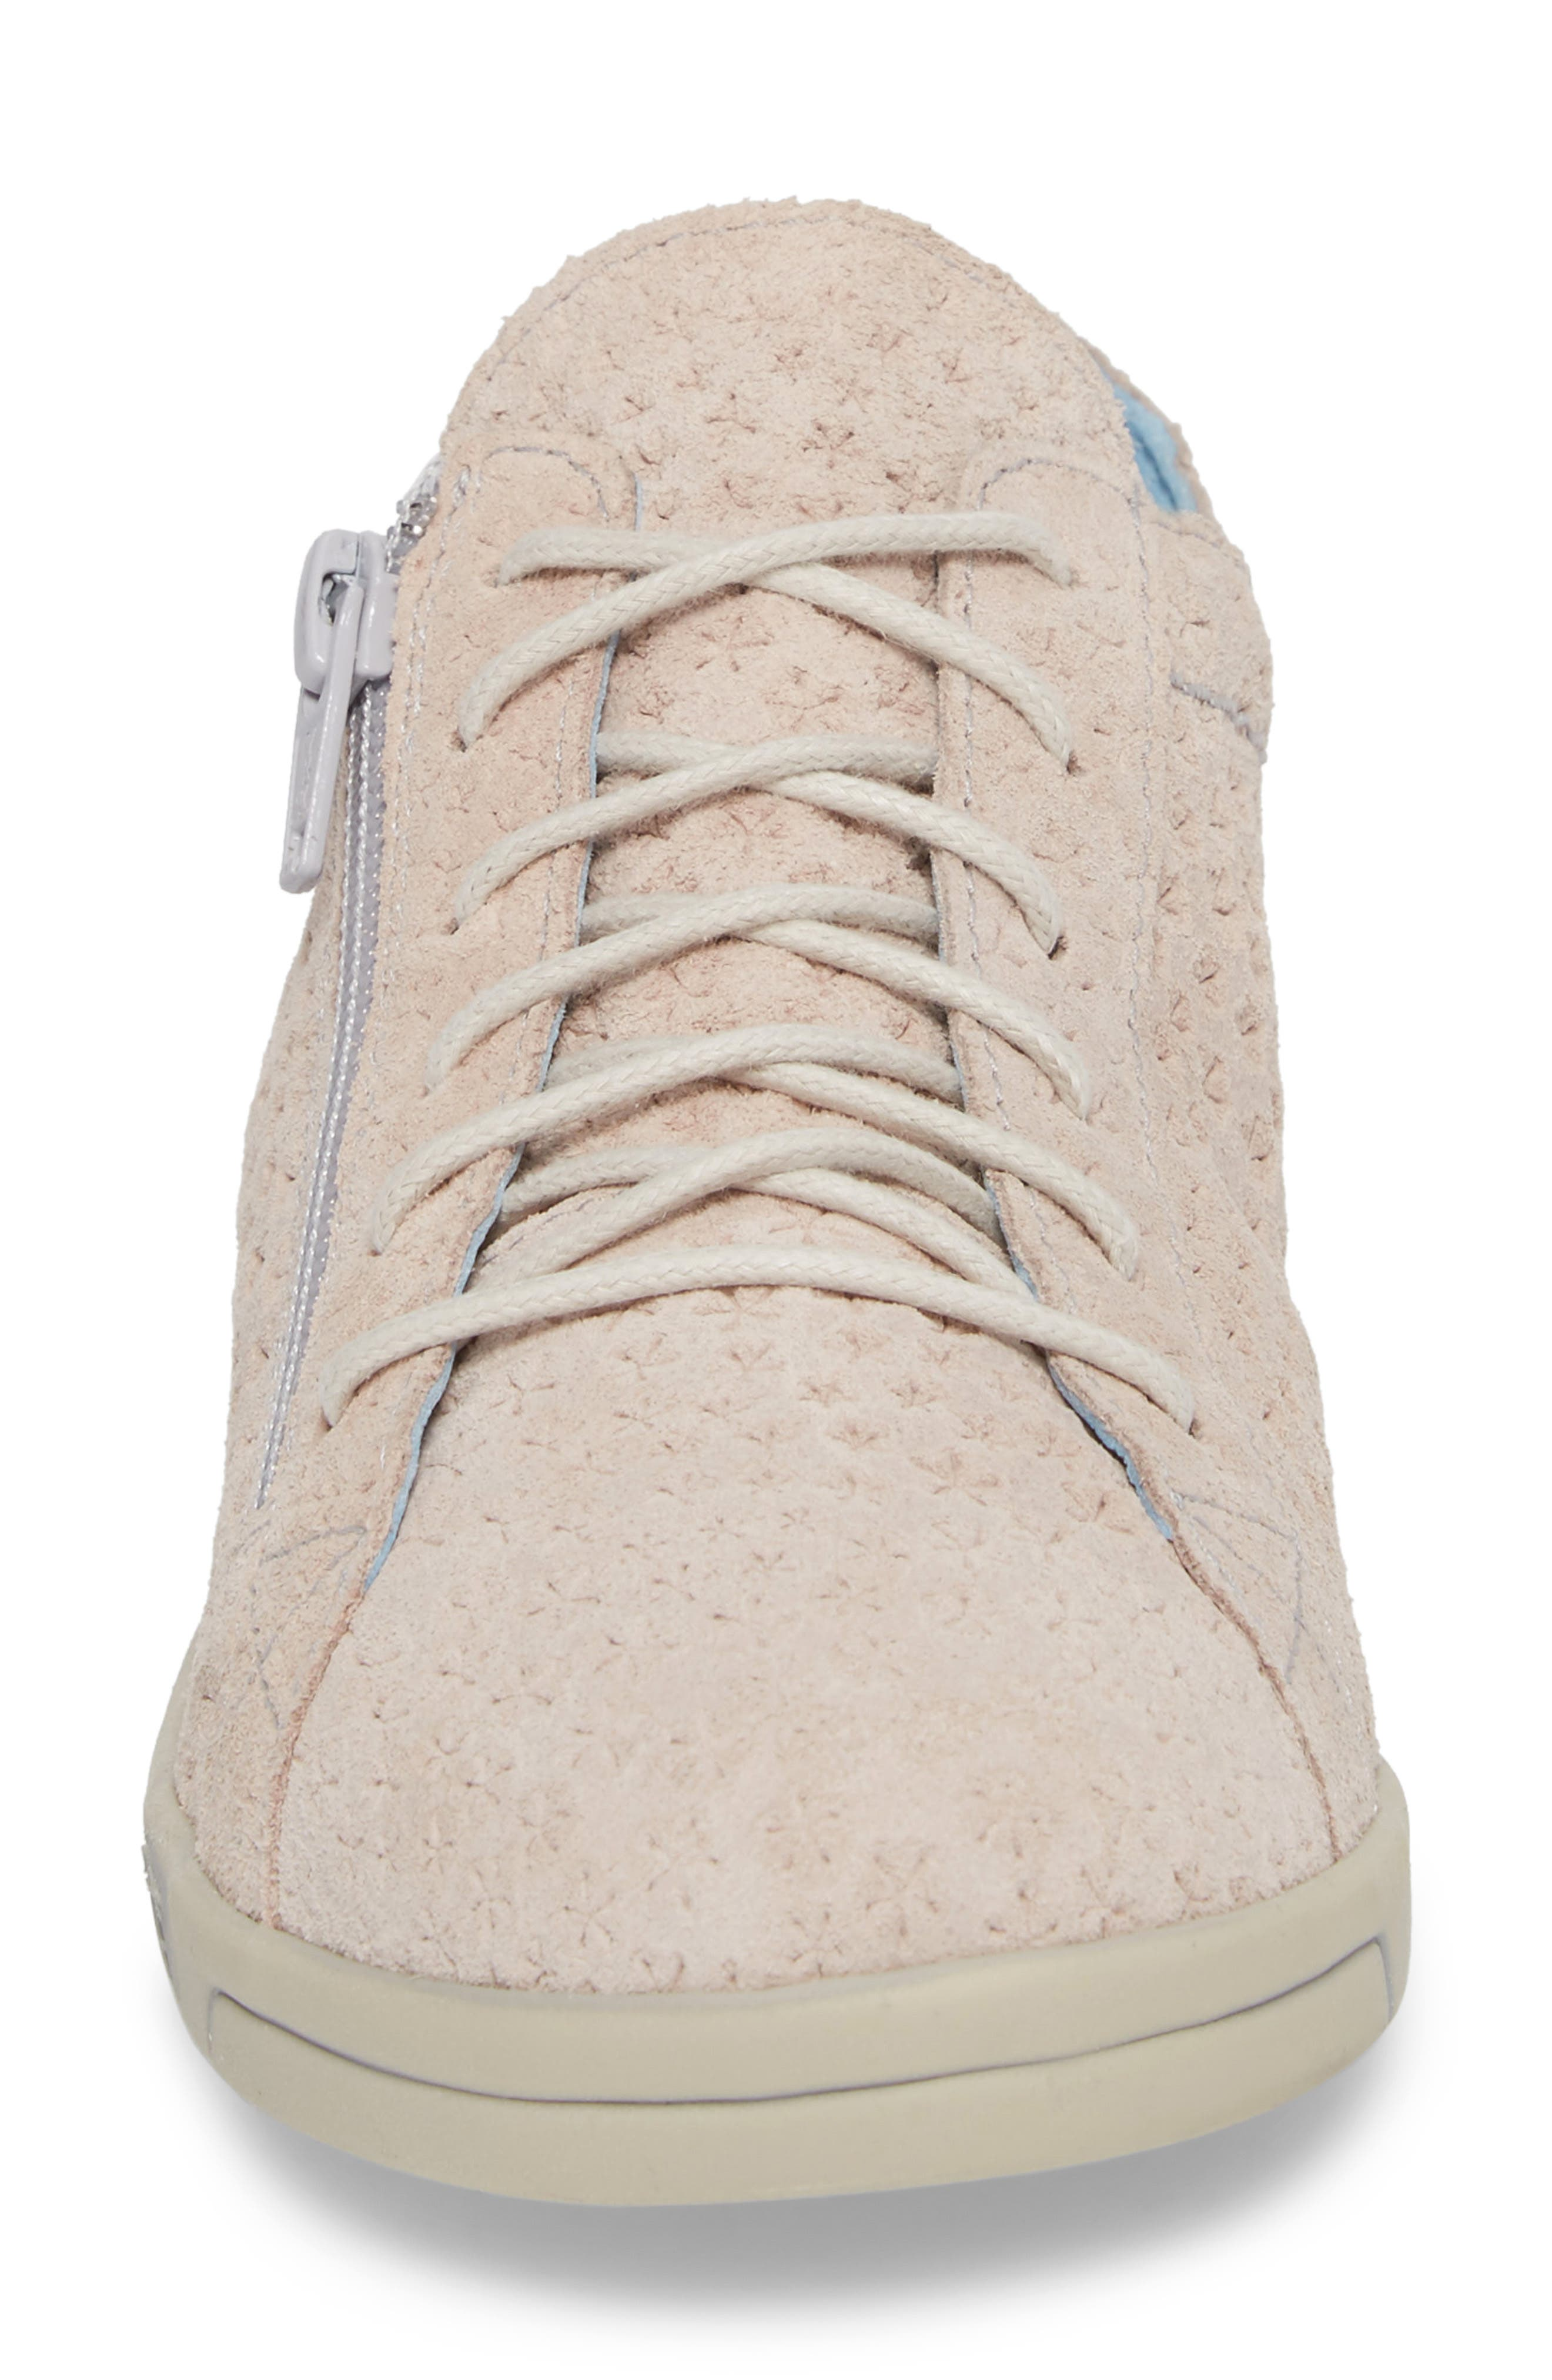 Aika Star Perforated Sneaker,                             Alternate thumbnail 4, color,                             Light Pink Leather